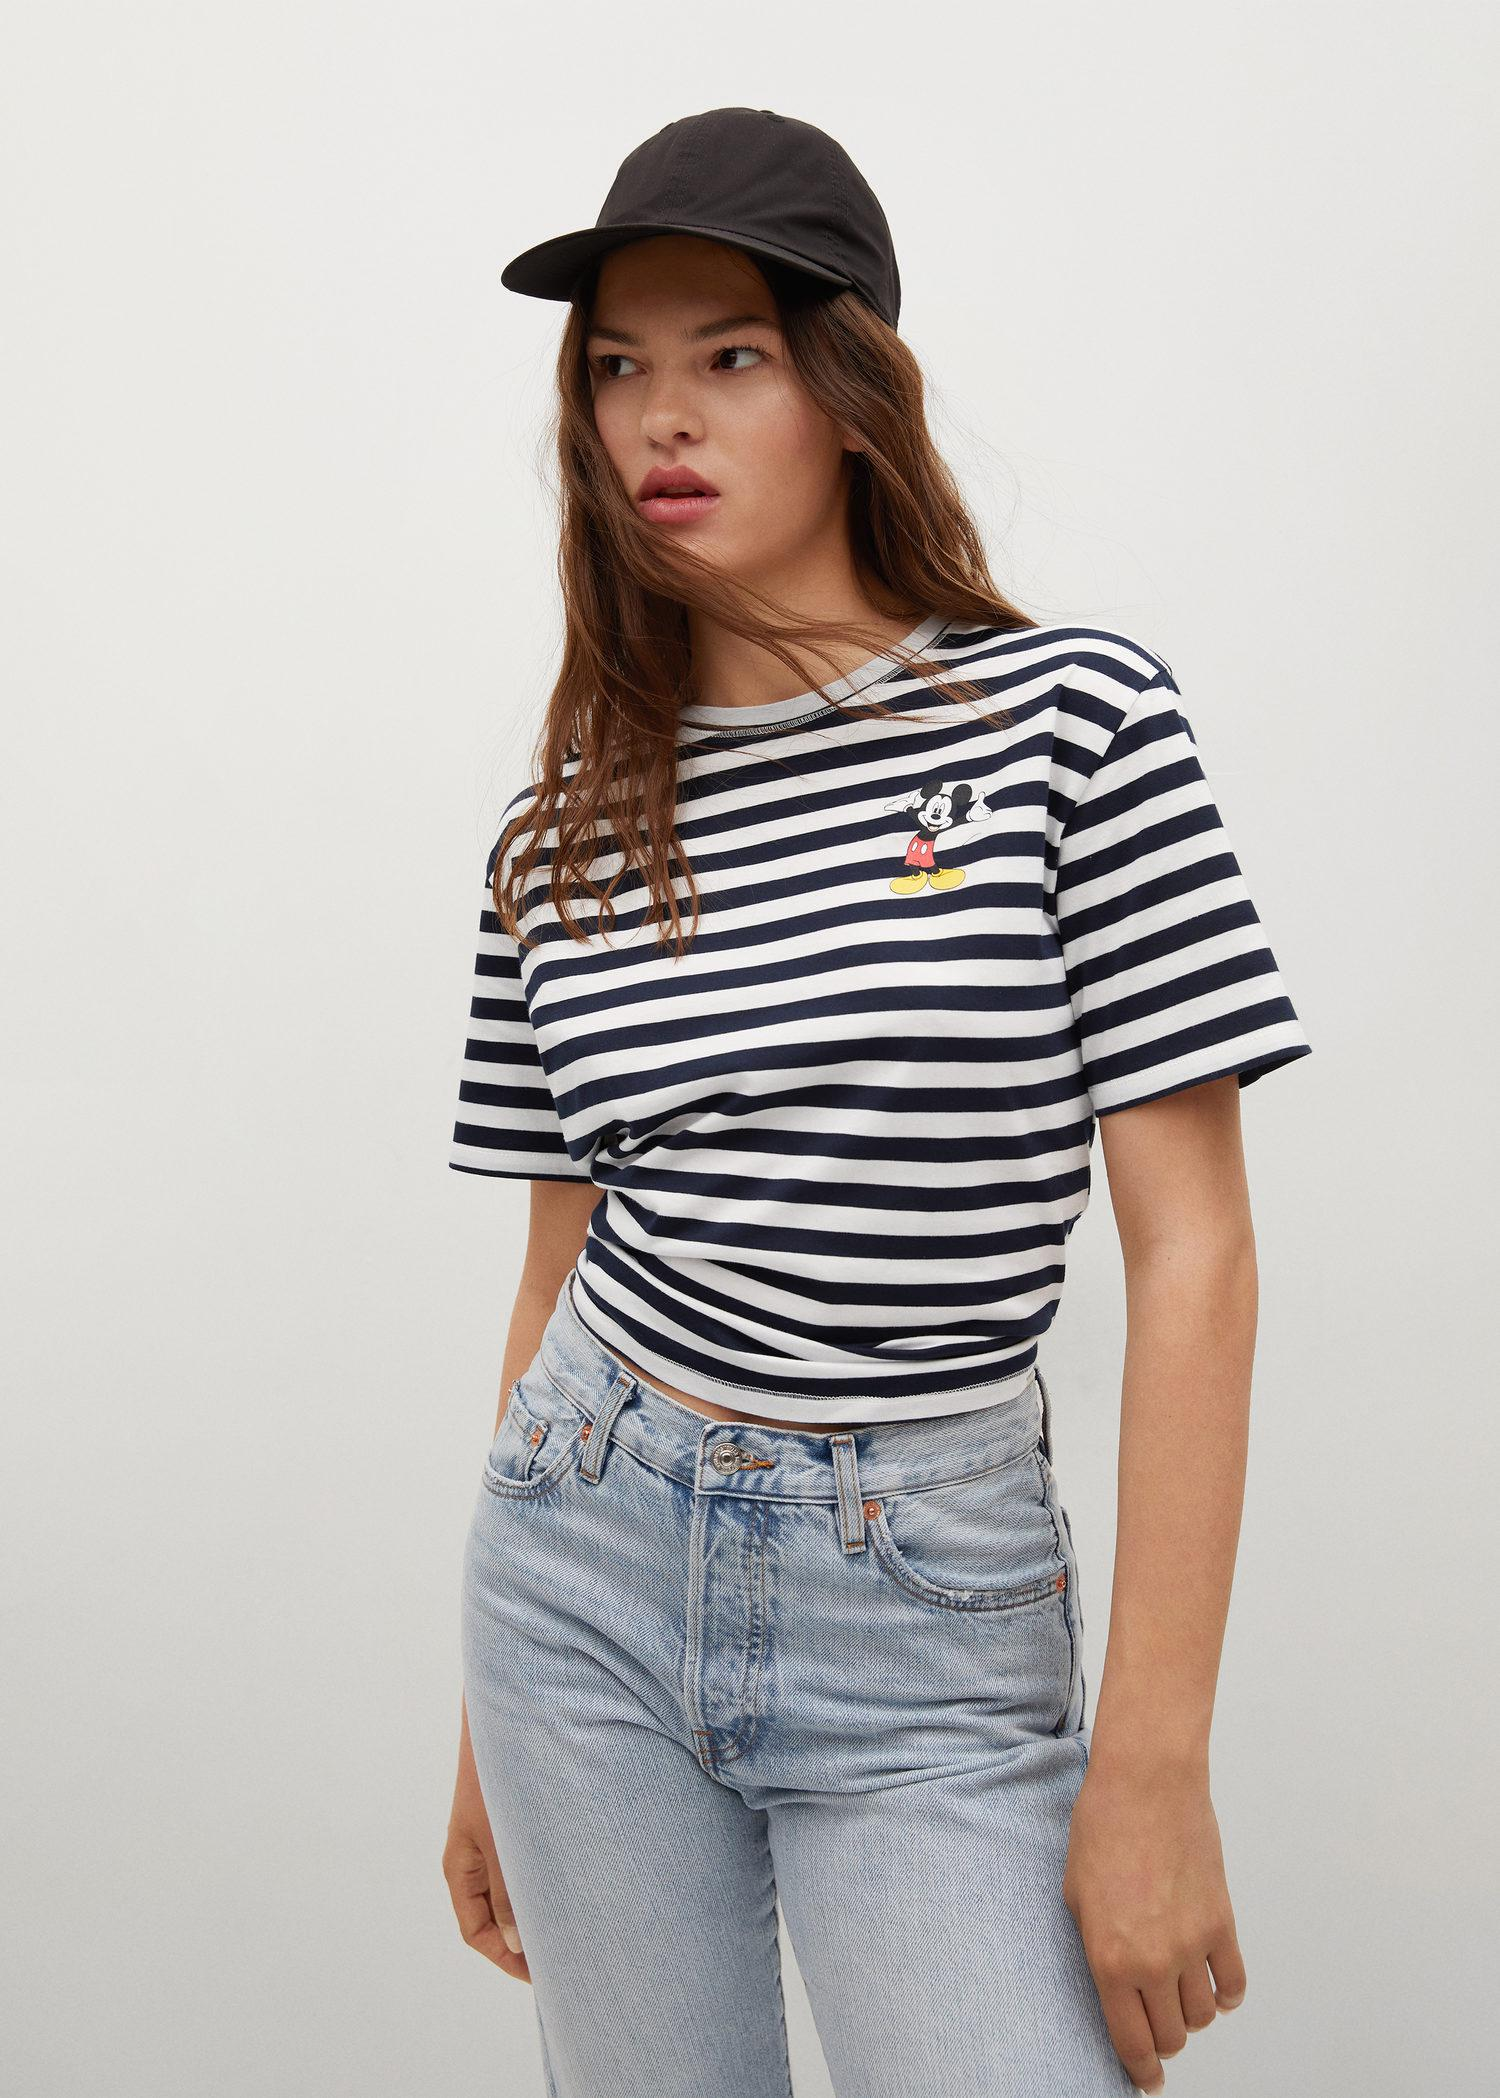 Mickey Mouse cotton t-shirt